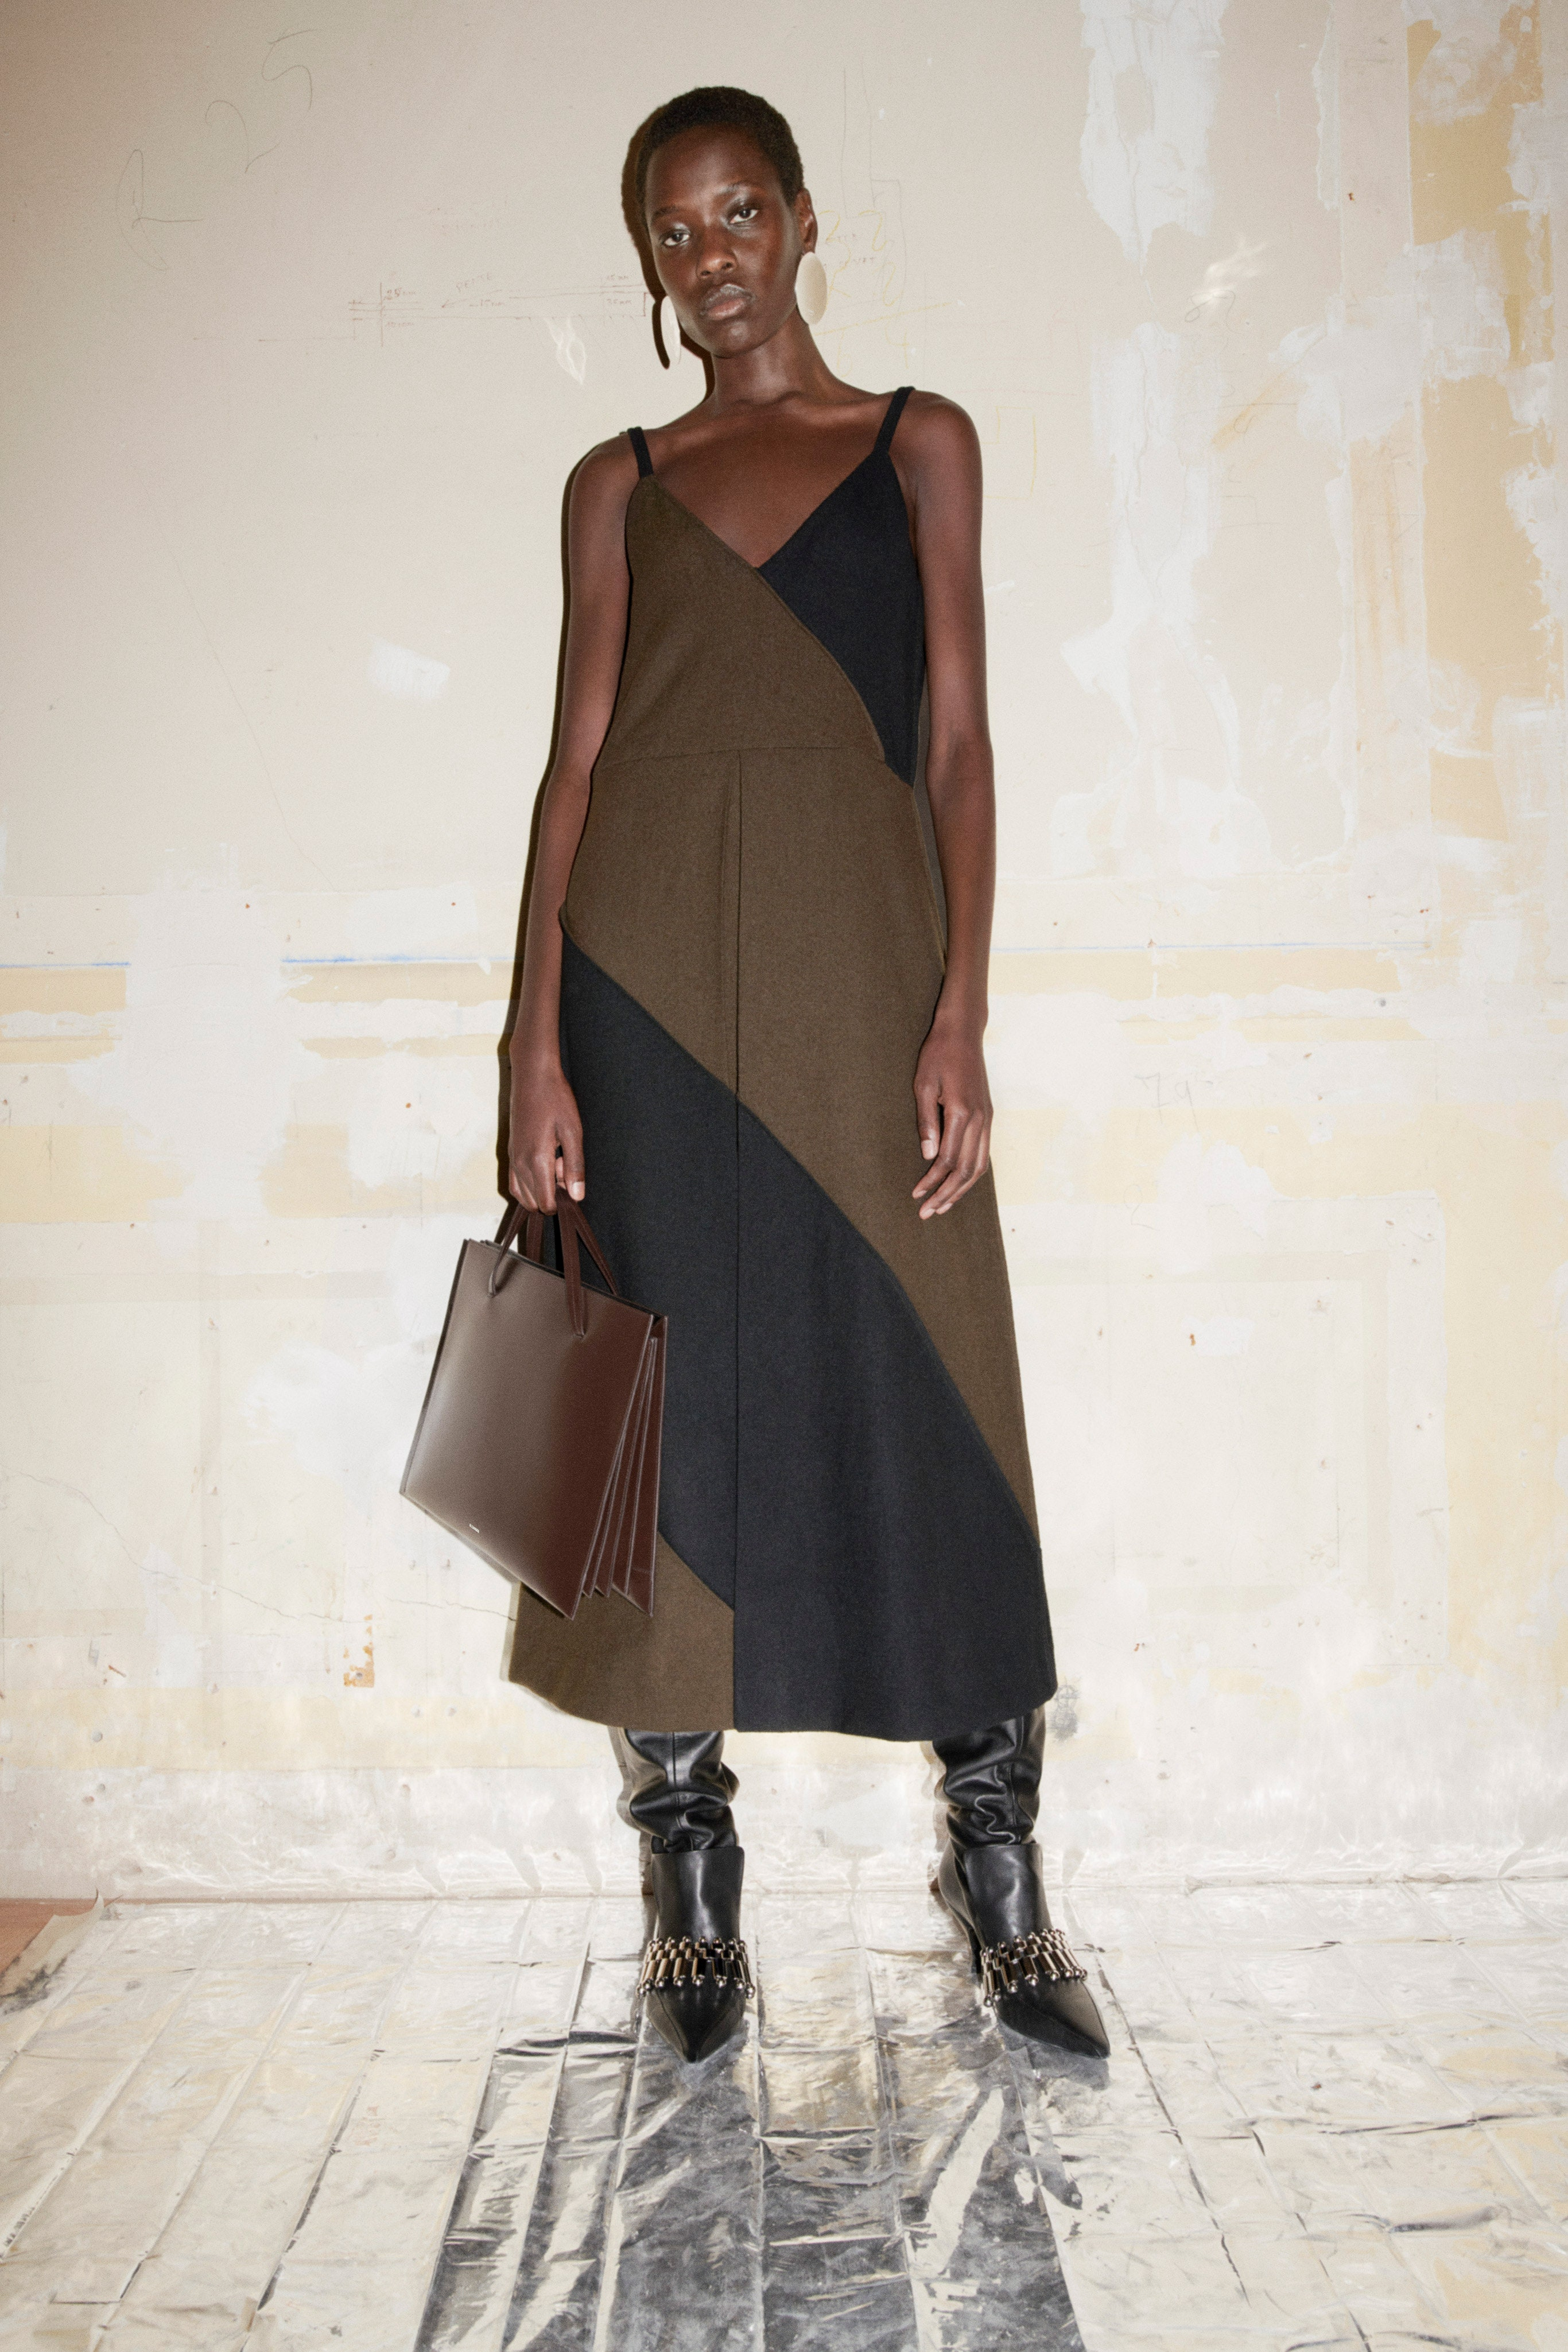 For walks in the fresh air: A seasonal collection of Jil Sander arrived at Asthik (photo 44)